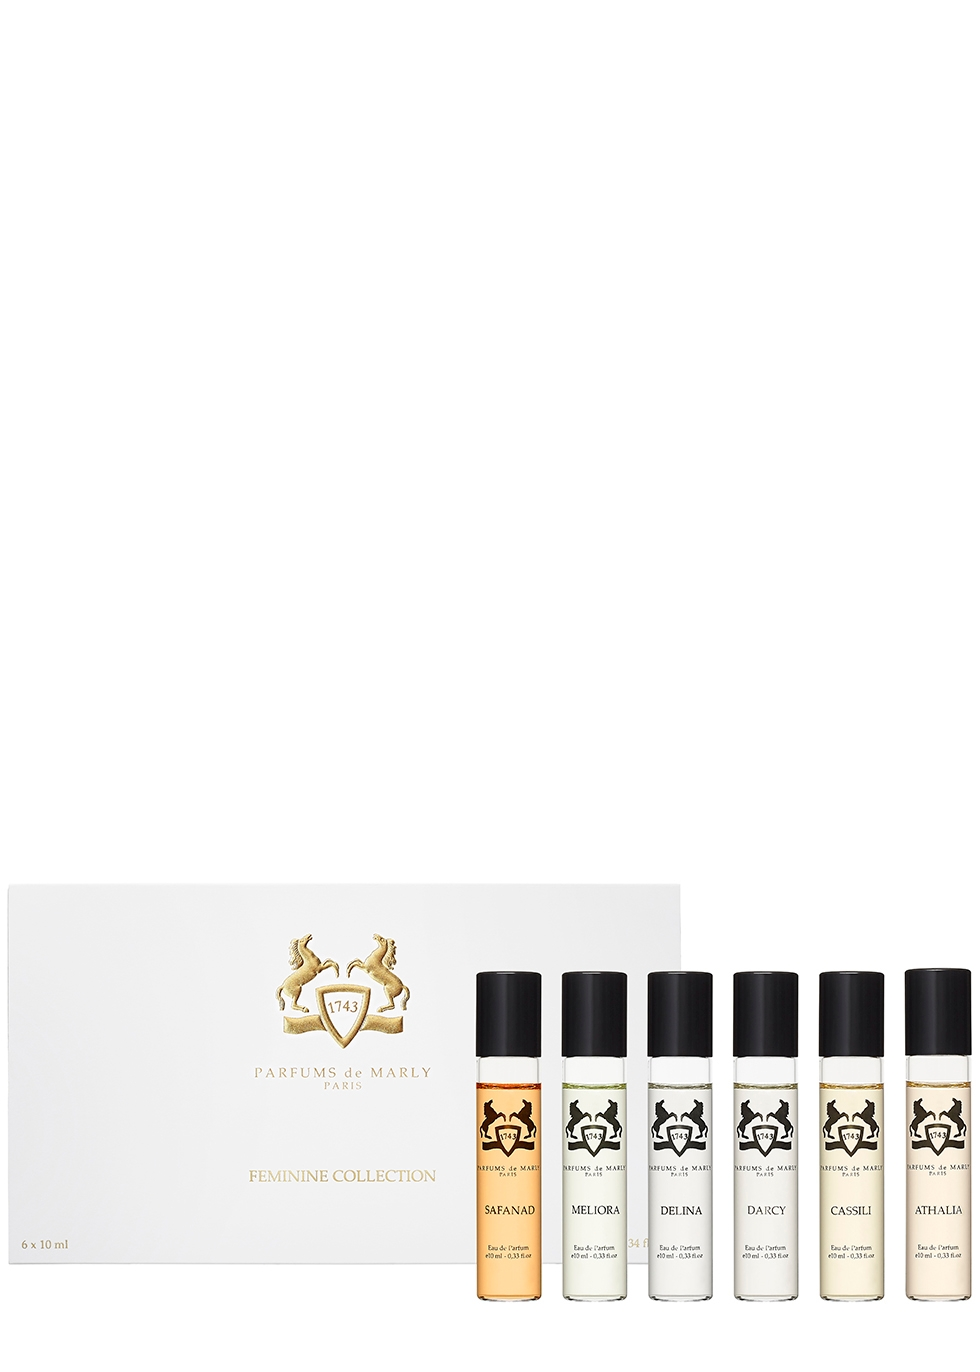 Feminine Discovery Collection 6 x 10ml